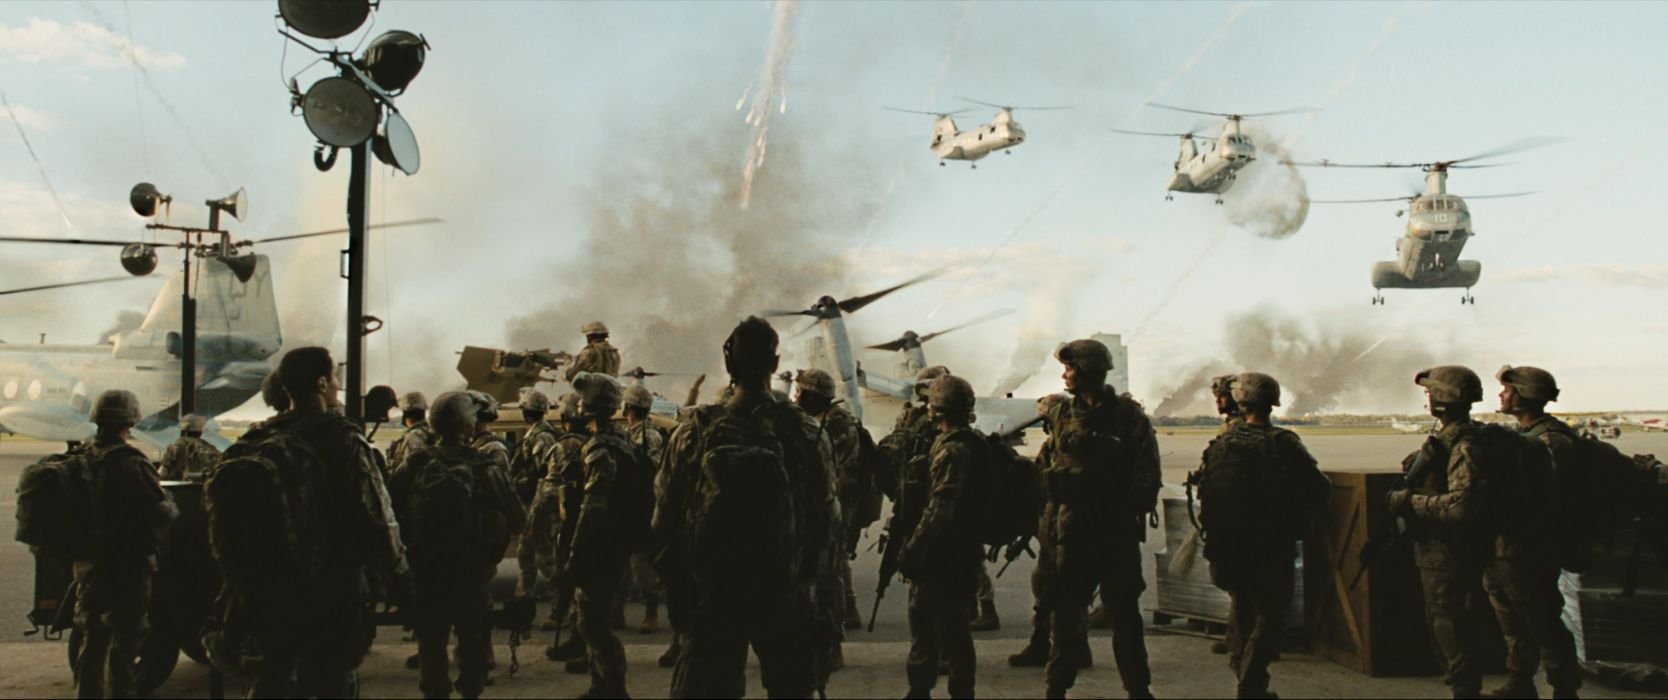 BATTLE LOS ANGELES action sci-fi drama military helicopter soldier     d wallpaper